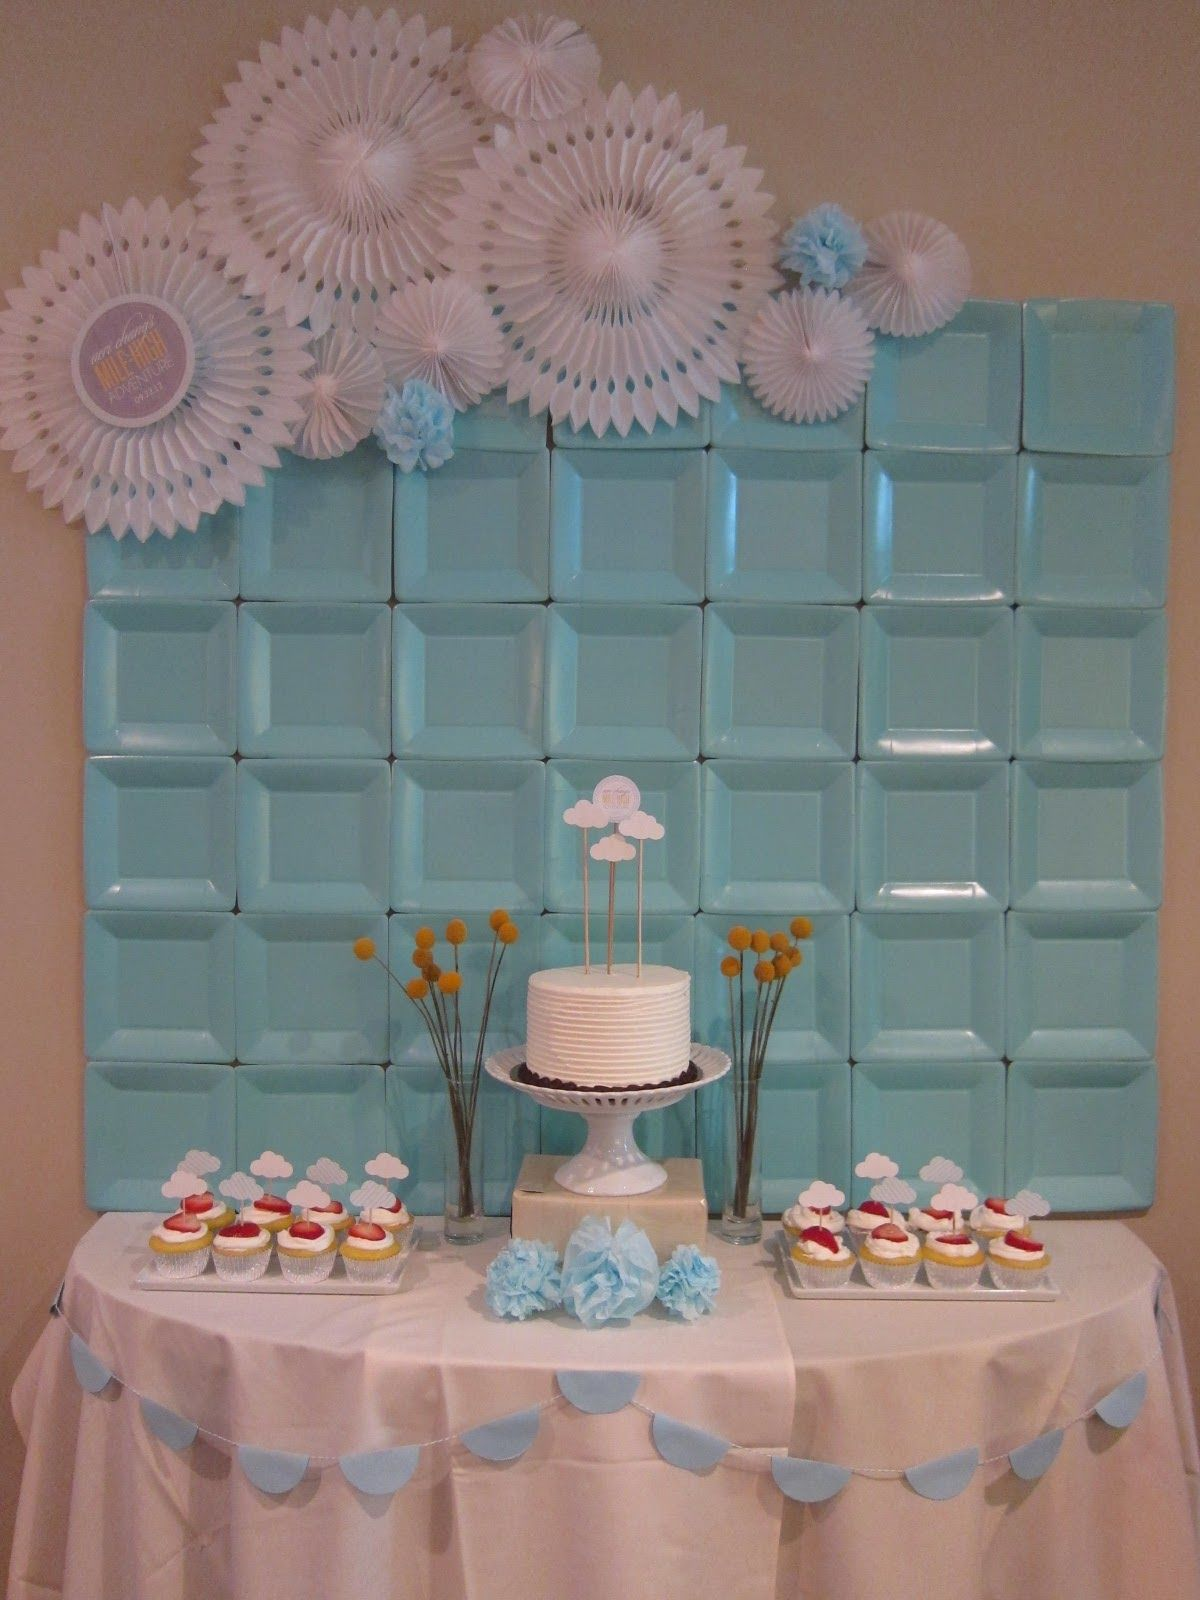 Paper Plate Backdrop Backdrop Ideas Pinterest Backdrops Bridal Showers And Babies